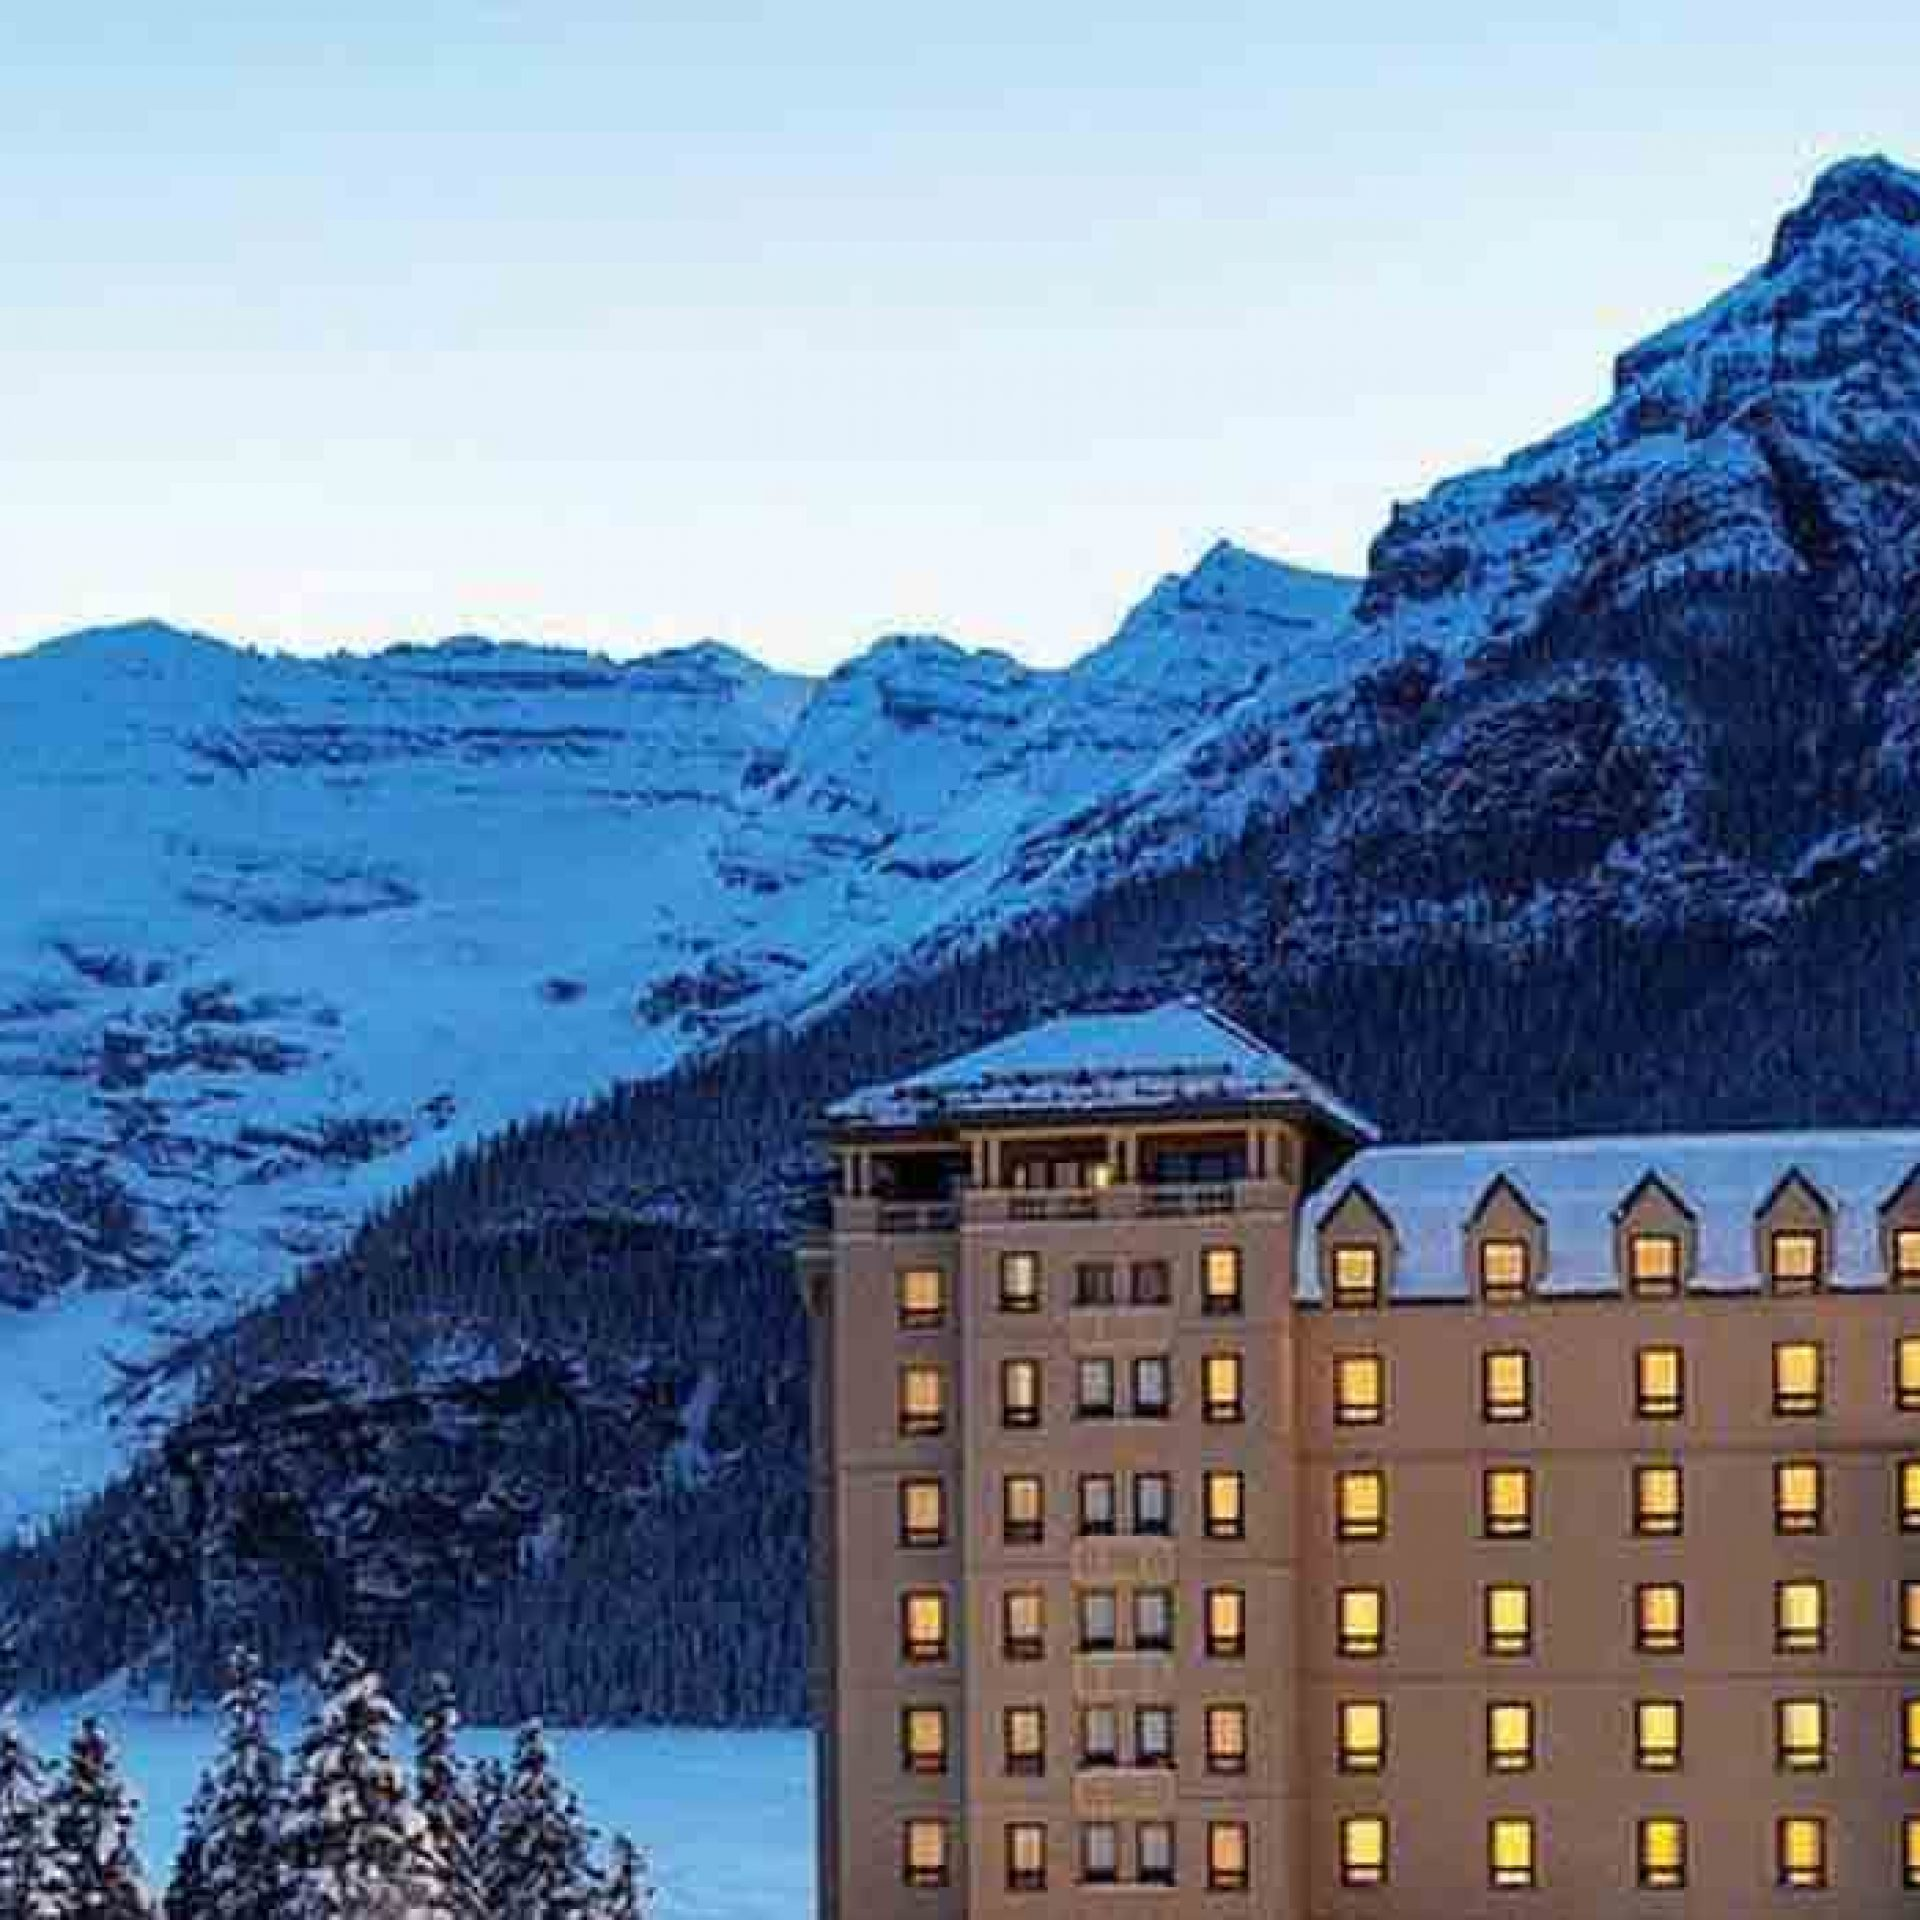 Fairmont Chateau Lake Louise at night with Victoria Glacier behind